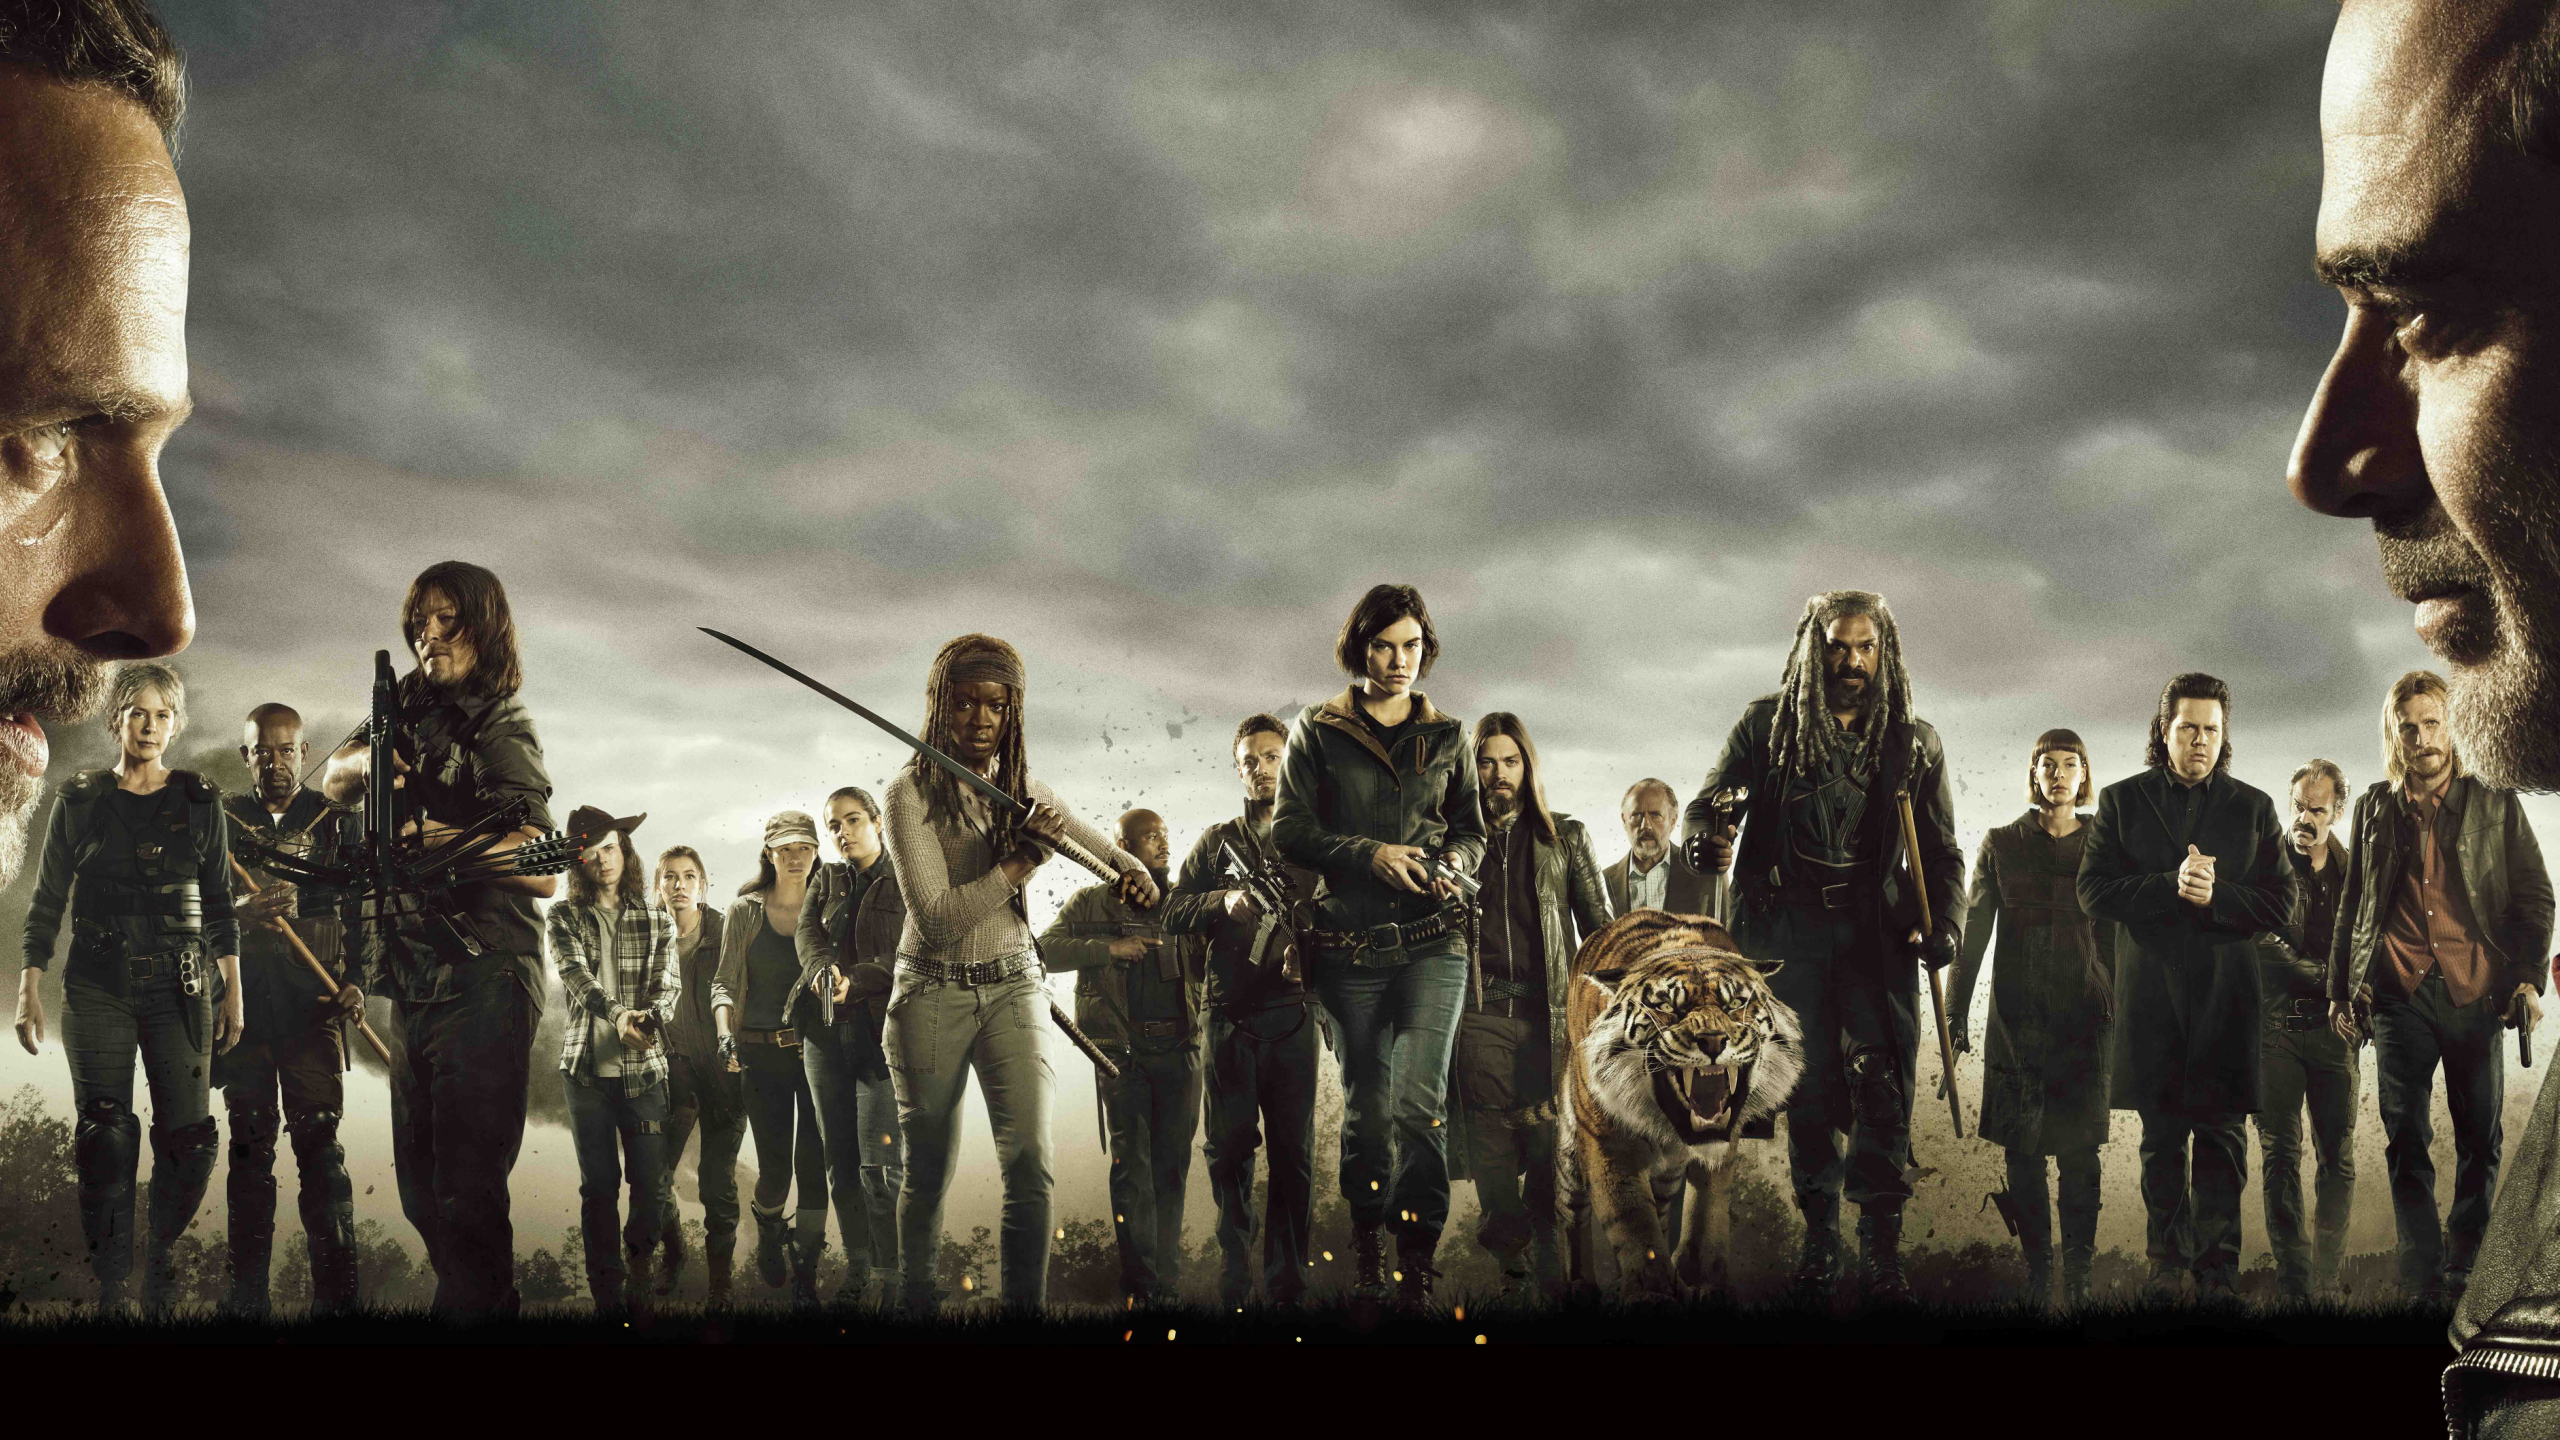 2560x1440 The Walking Dead Cast Poster 1440p Resolution Wallpaper